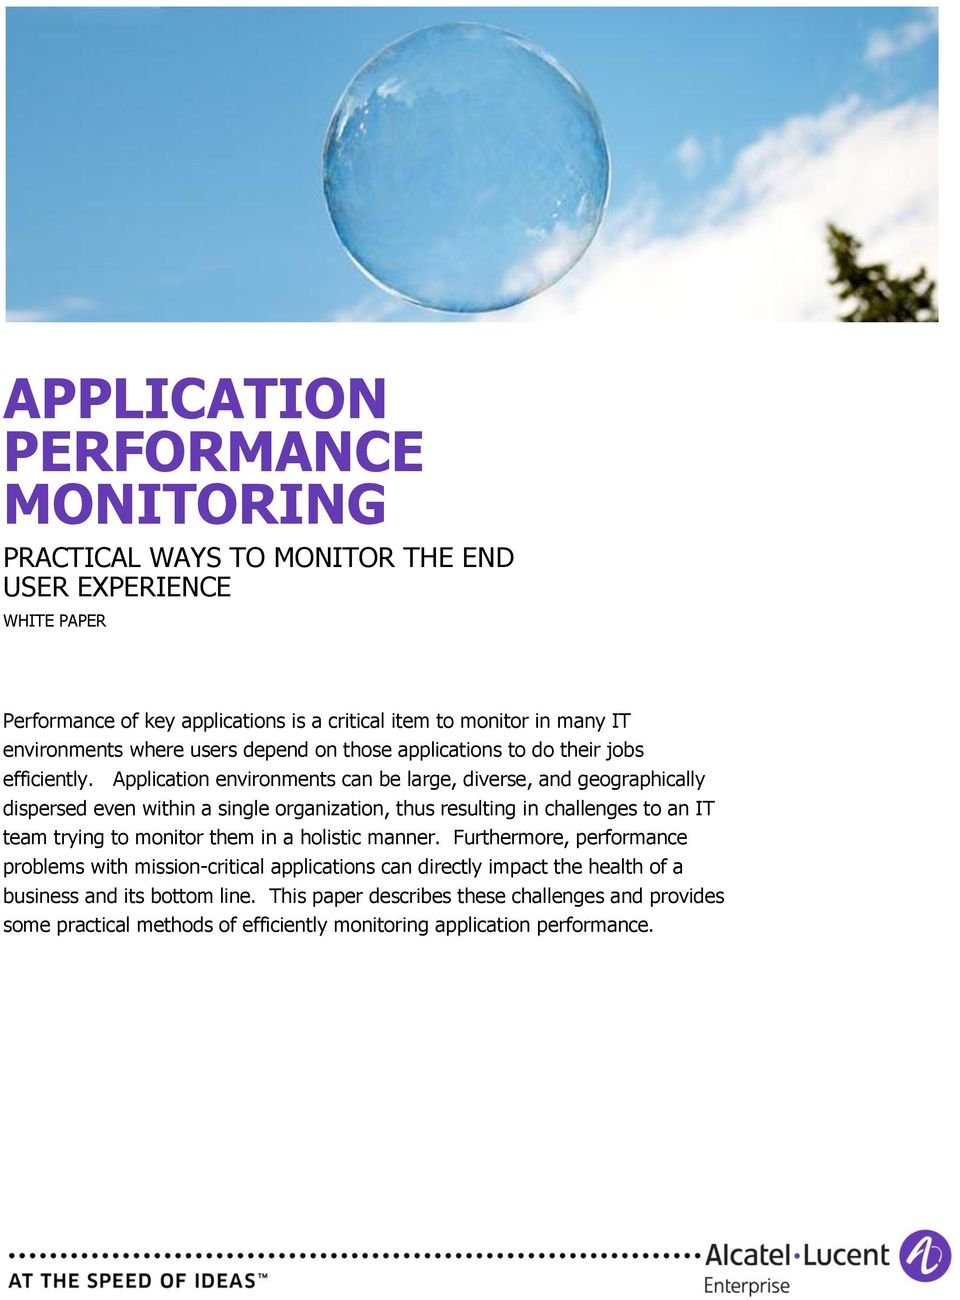 Application environments can be large, diverse, and geographically dispersed even within a single organization, thus resulting in challenges to an IT team trying to monitor them